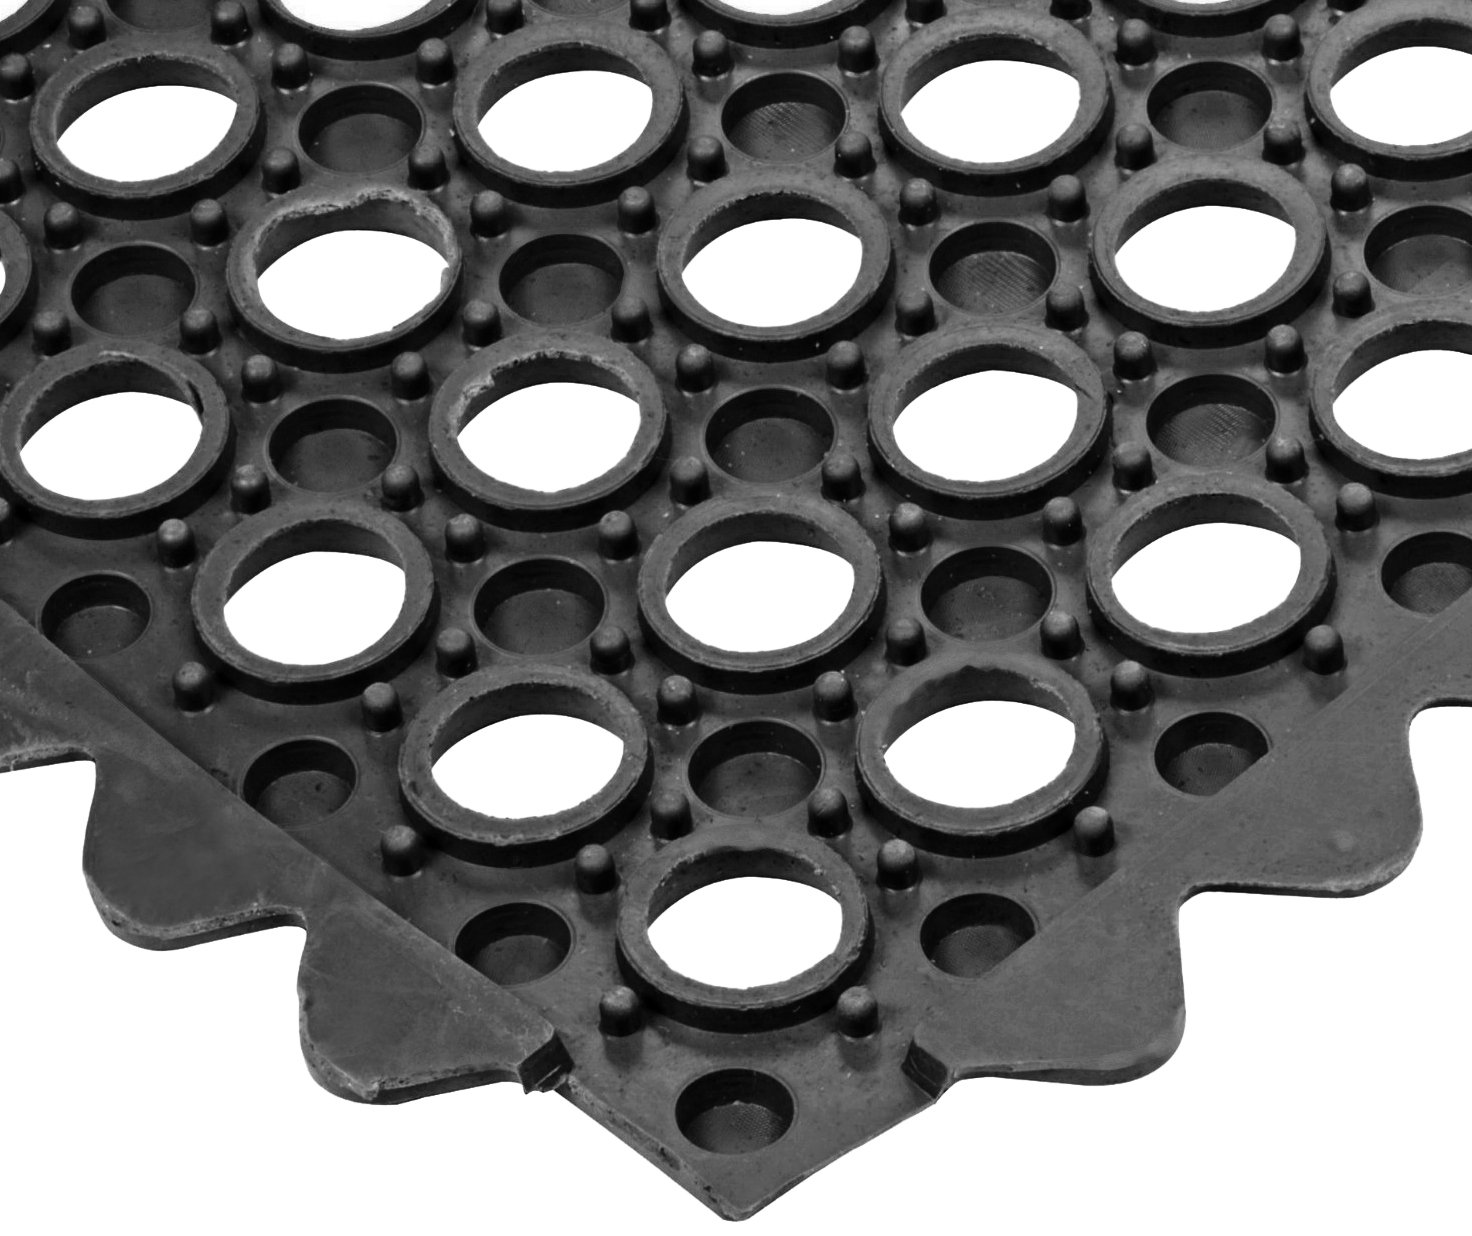 for Wet Areas Black 3 Width x 3 Length x 1//2 Thickness NoTrax T32 General Purpose Rubber Safety//Anti-Fatigue Ultra Mat